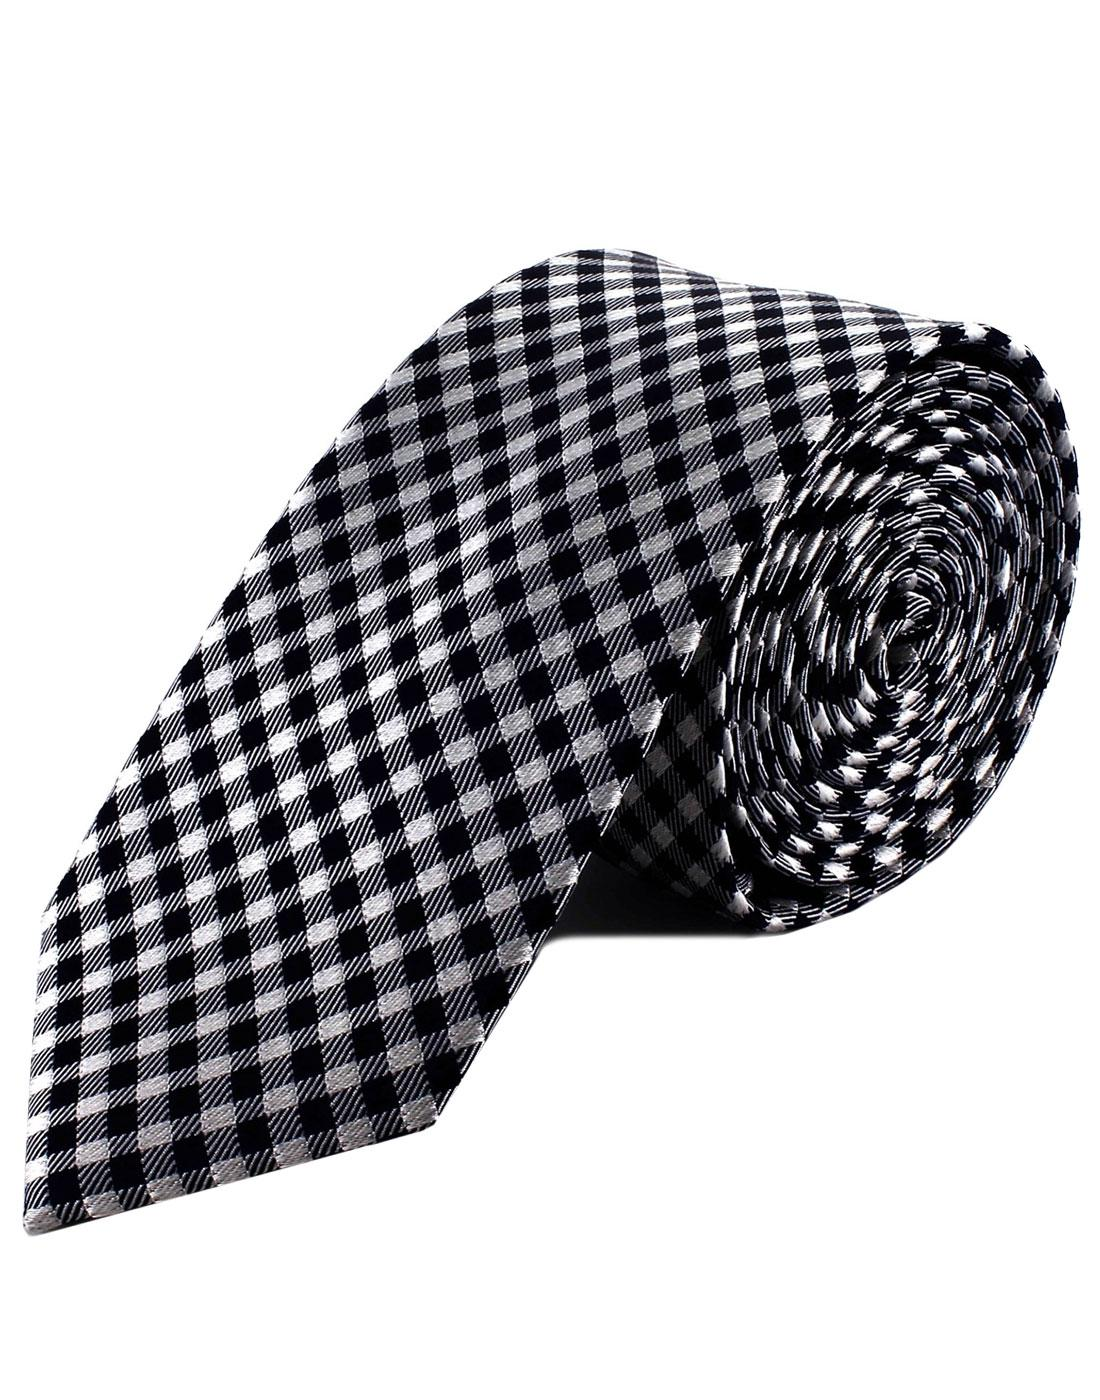 TOOTAL Retro Mod 60s Silk Gingham Tie in Navy